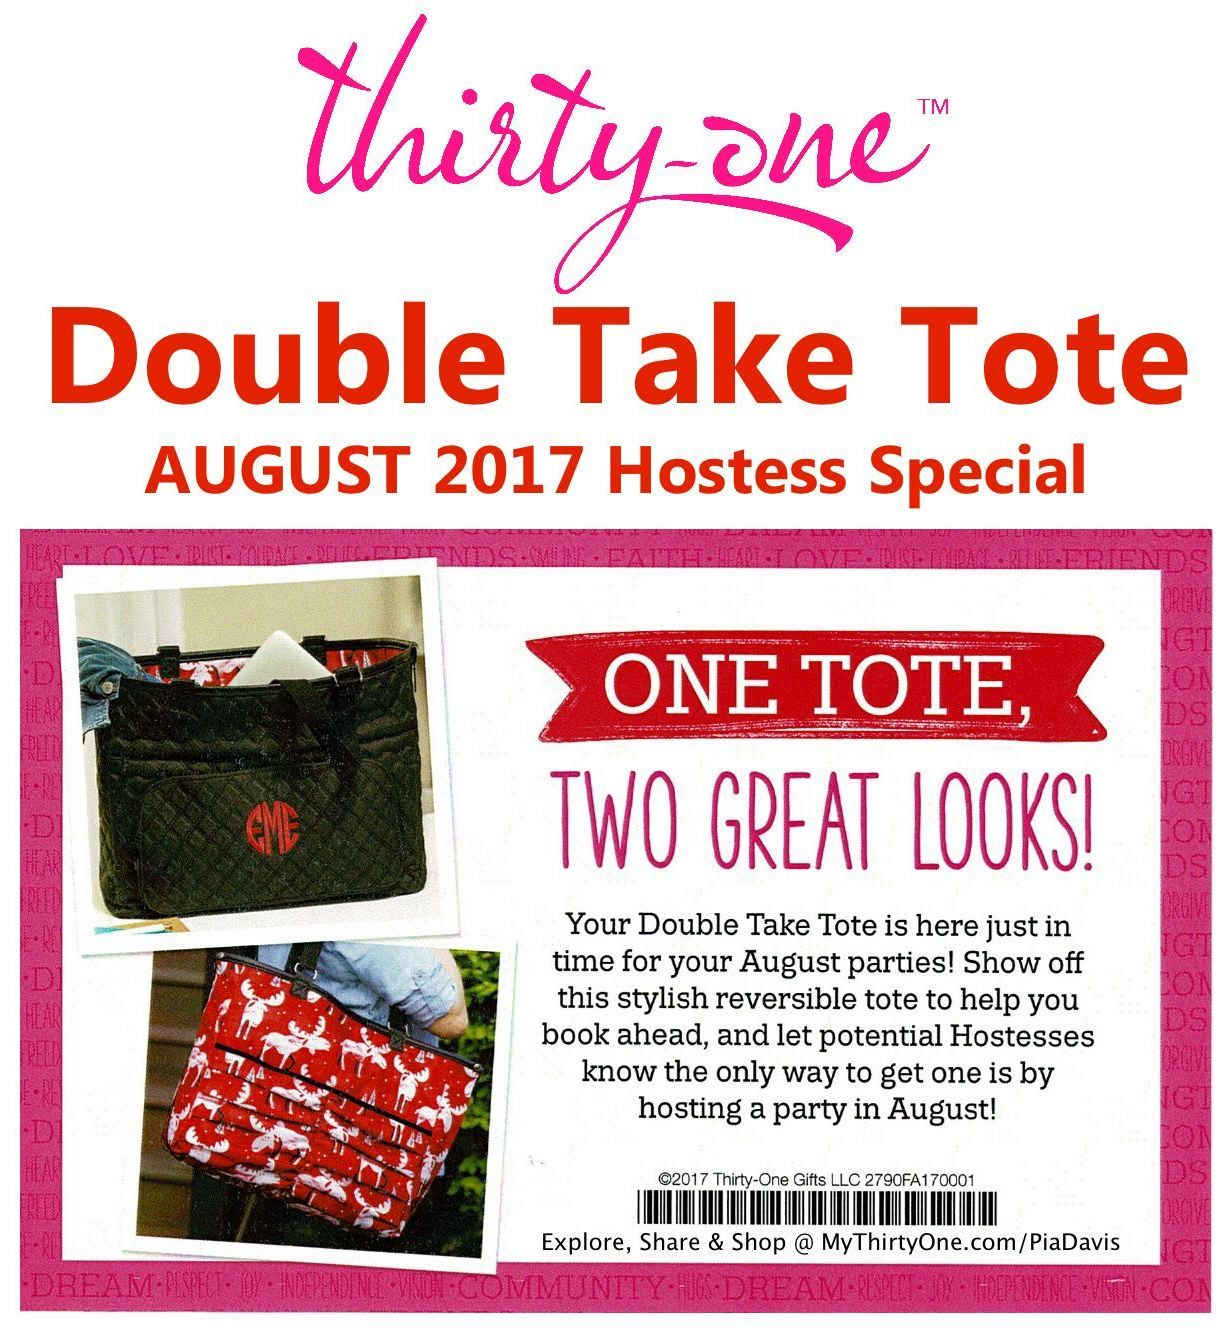 Thirty one november customer special 2014 - Double Take Tote August 2017 Hostess Special Love The New Thirty One Prints